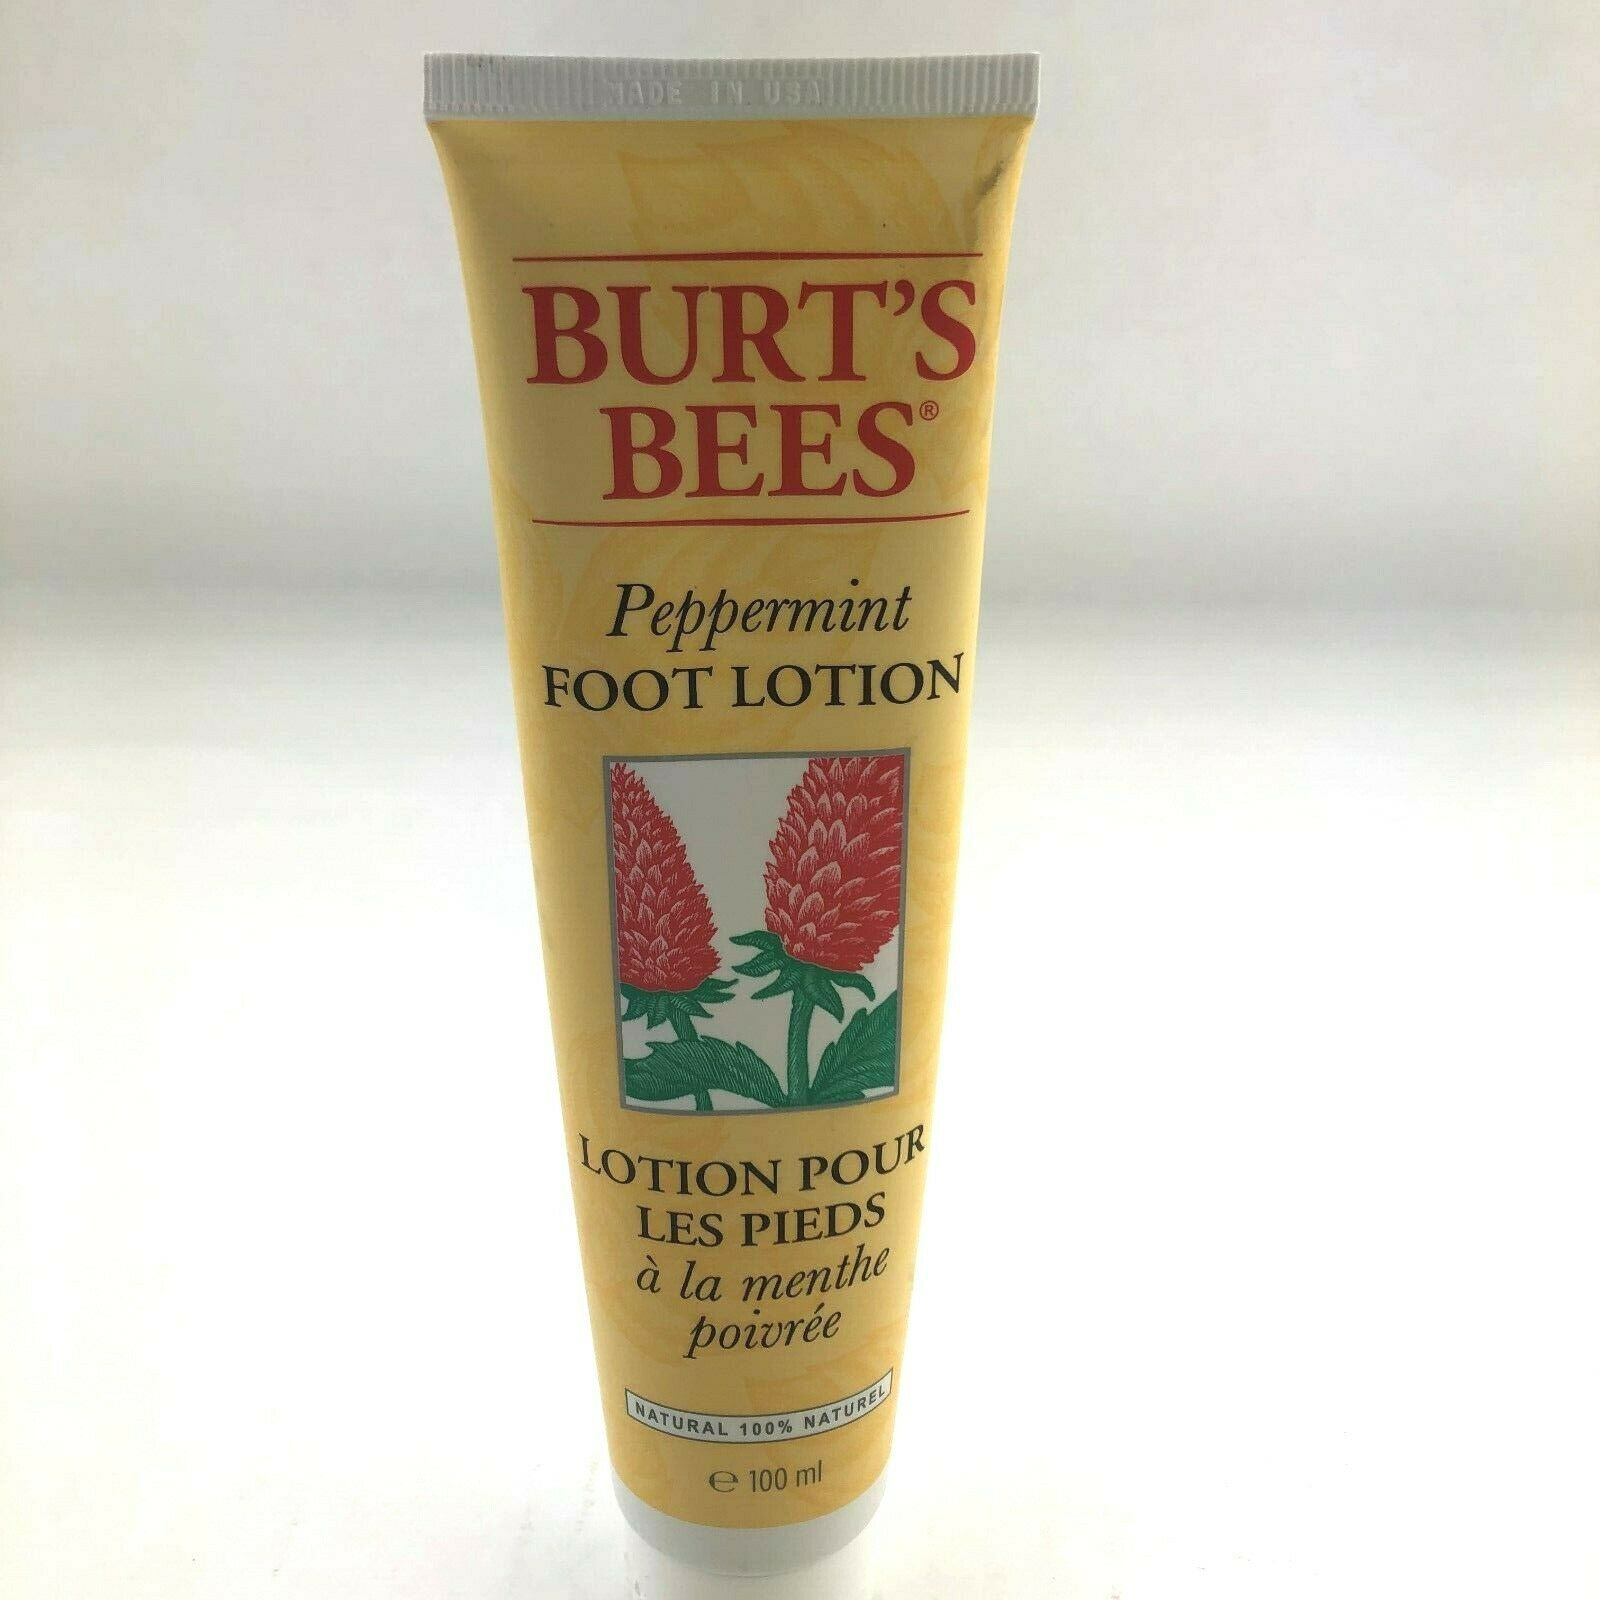 Burt's Bees Natural Peppermint Foot Lotion Skin Care 3.38 oz Brand New 2